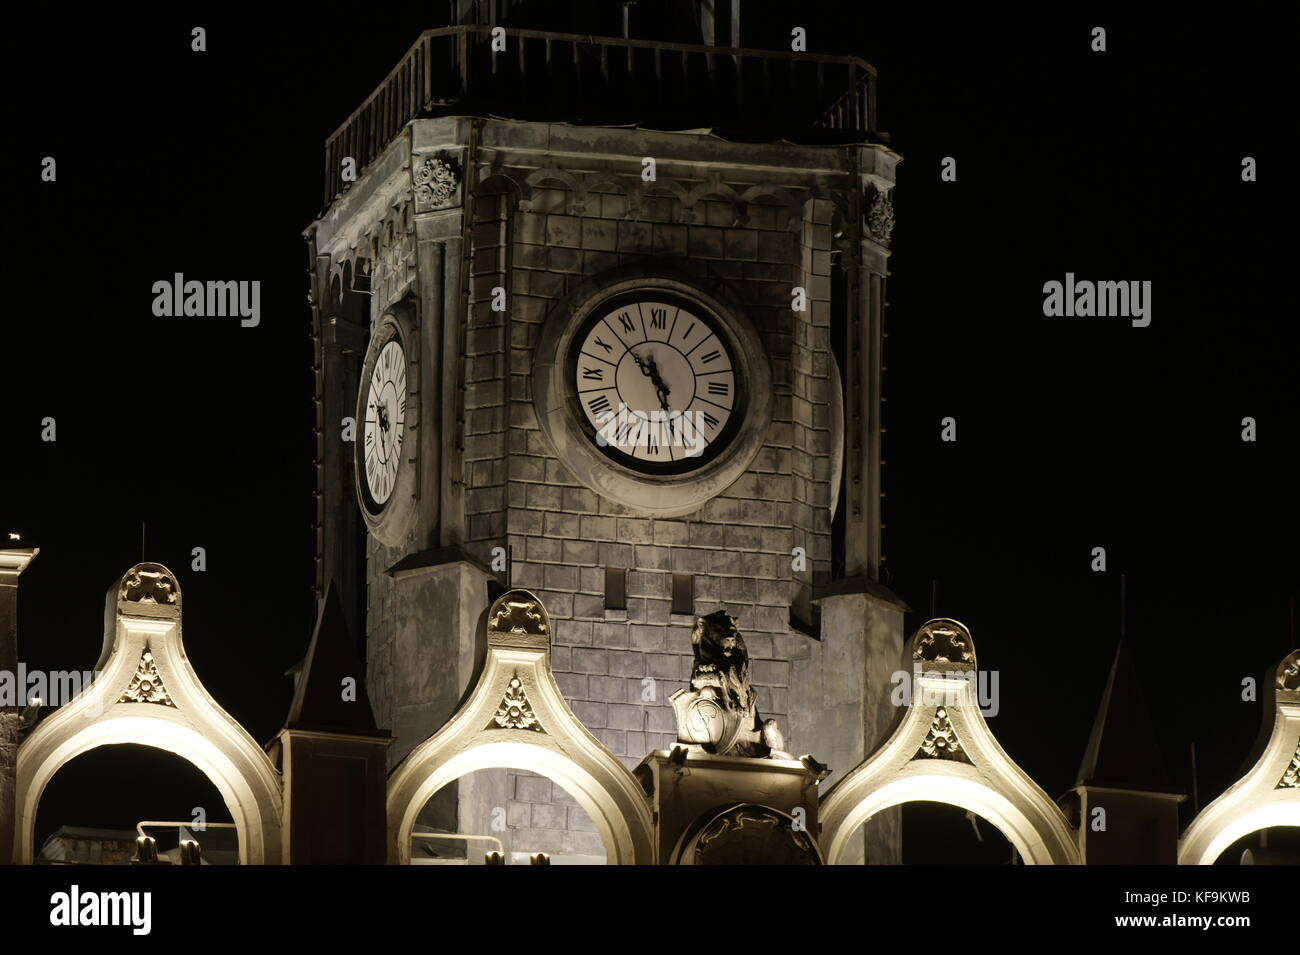 Lit from below, the watch looked very impressive. - Stock Image